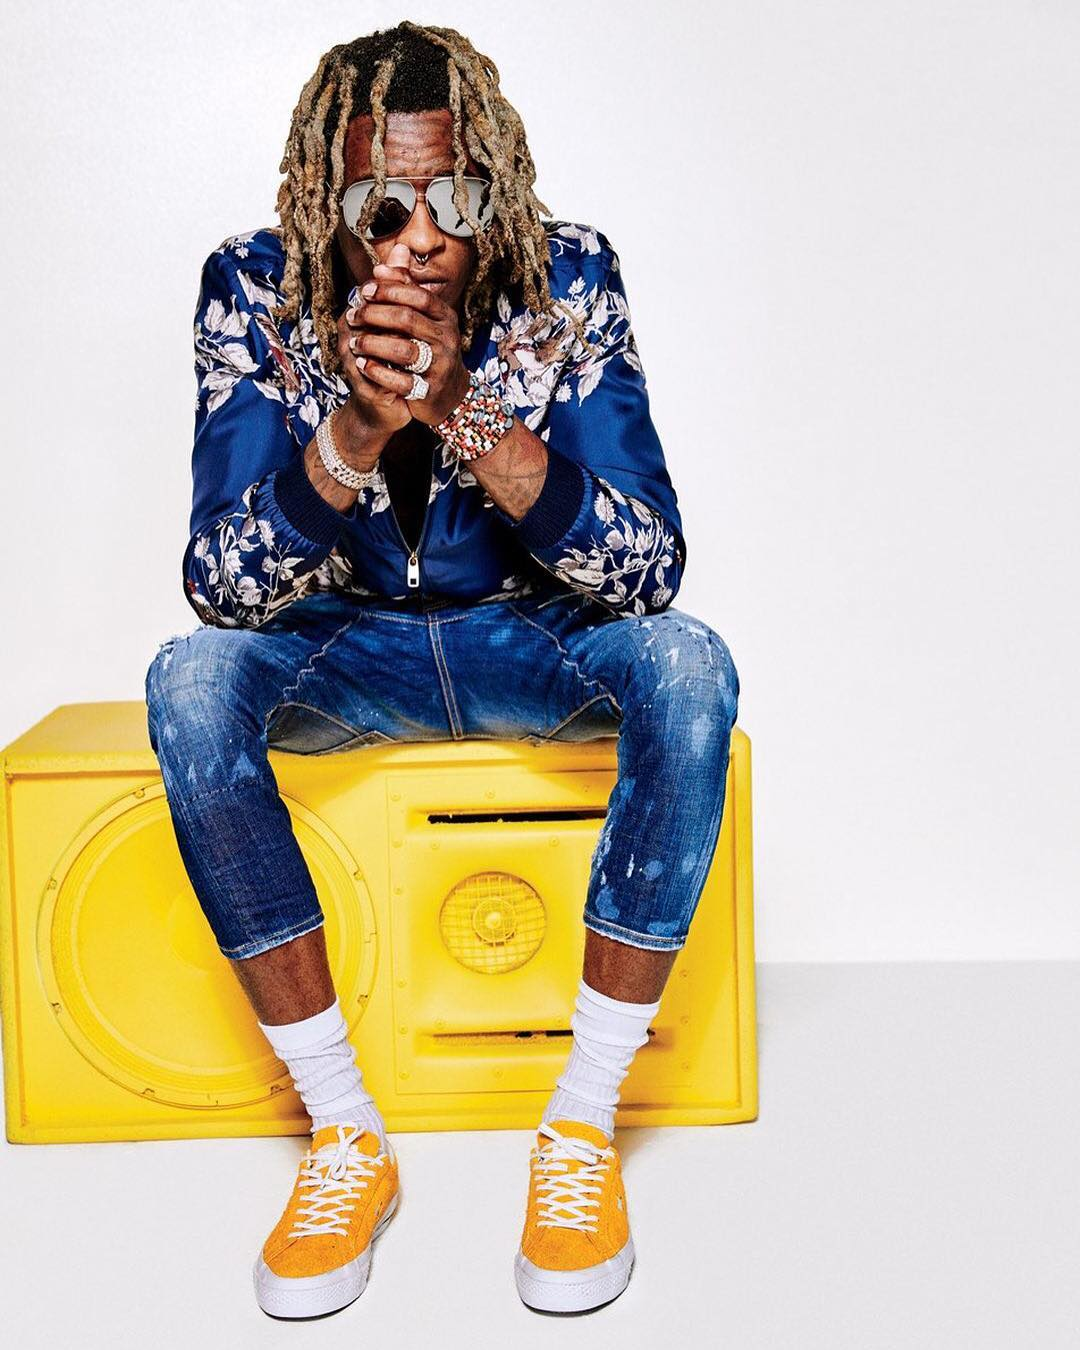 SPOTTED: Young Thug In Dolce & Gabbana Jacket And Converse Sneakers For GQ Magazine